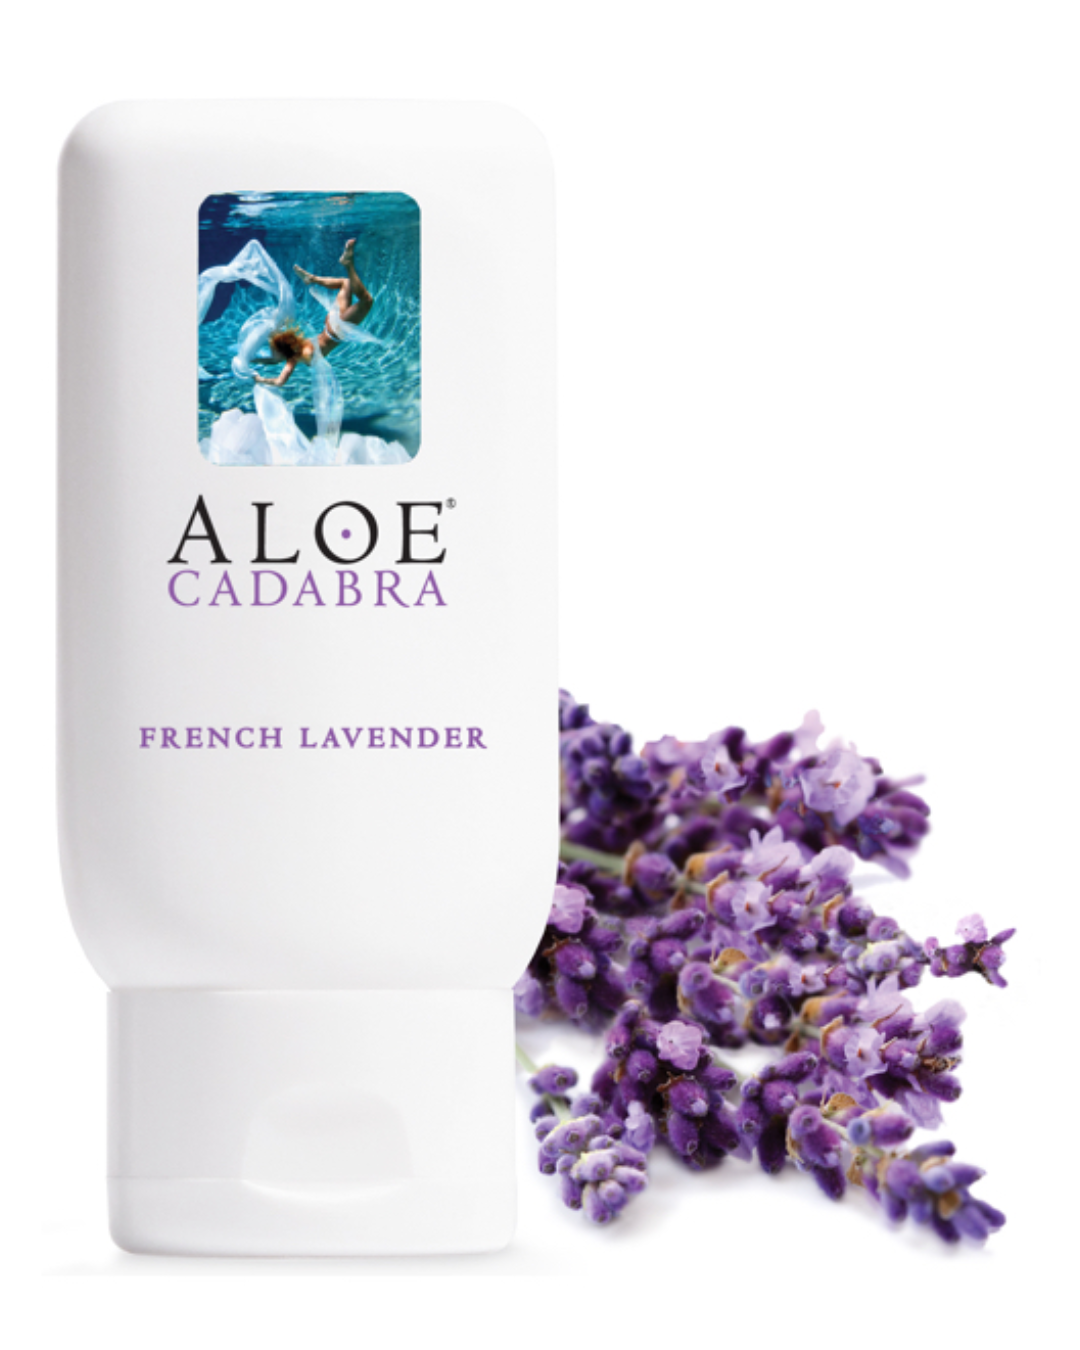 Aloe Cadabra Organic Water Based French Lavender Scent Natural Lubricant 2.5 oz